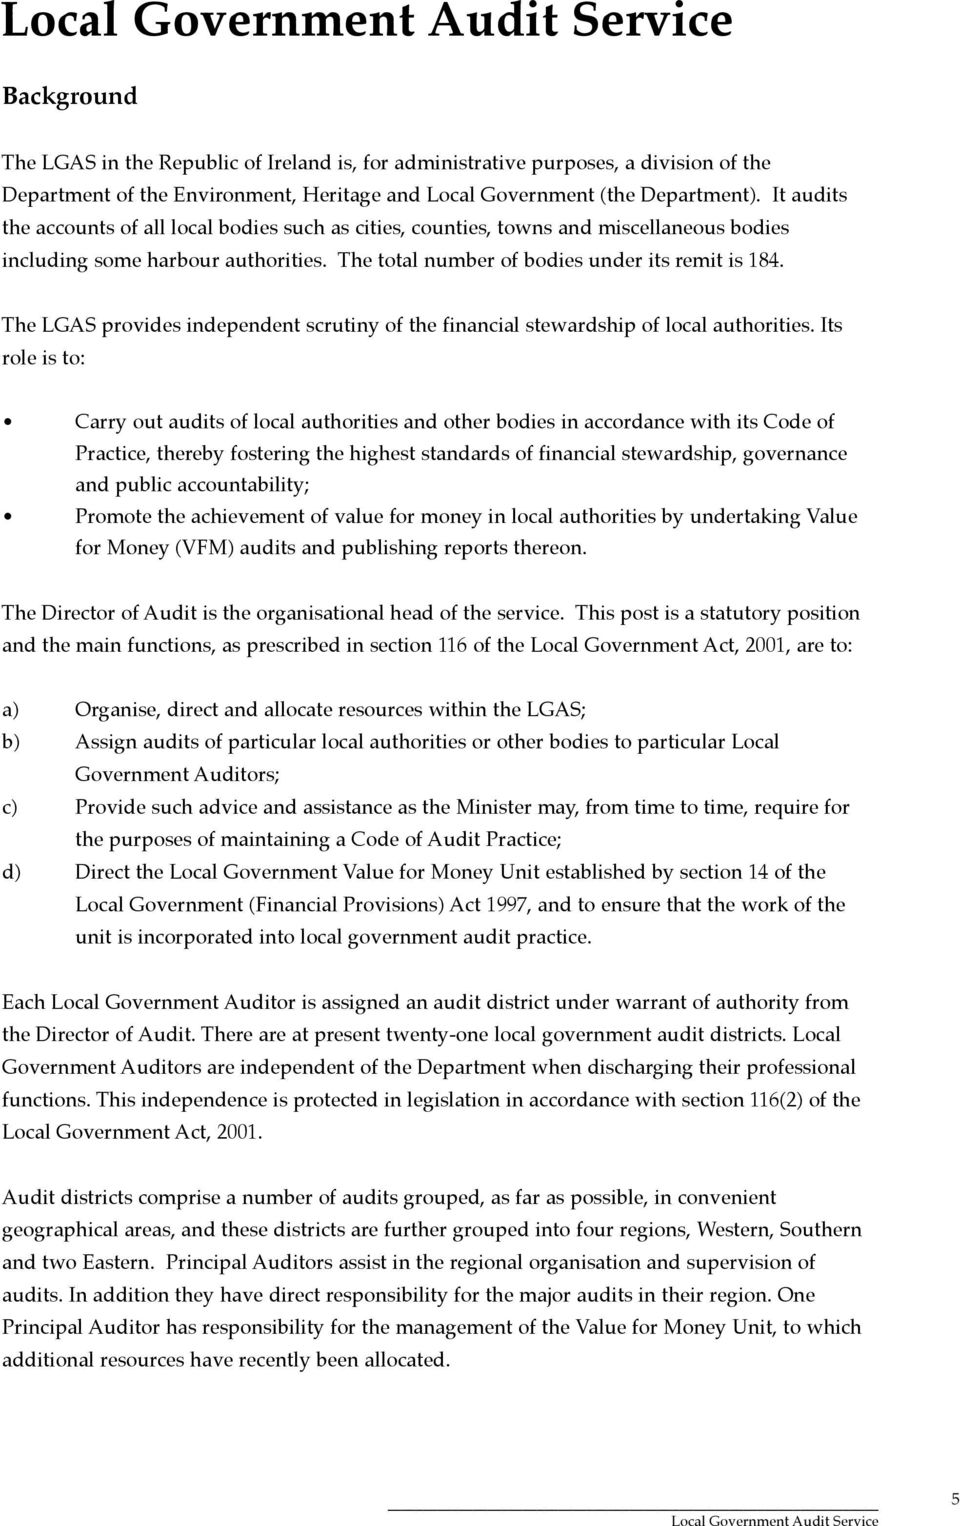 the LGAS provides independent scrutiny of the financial stewardship of local authorities.